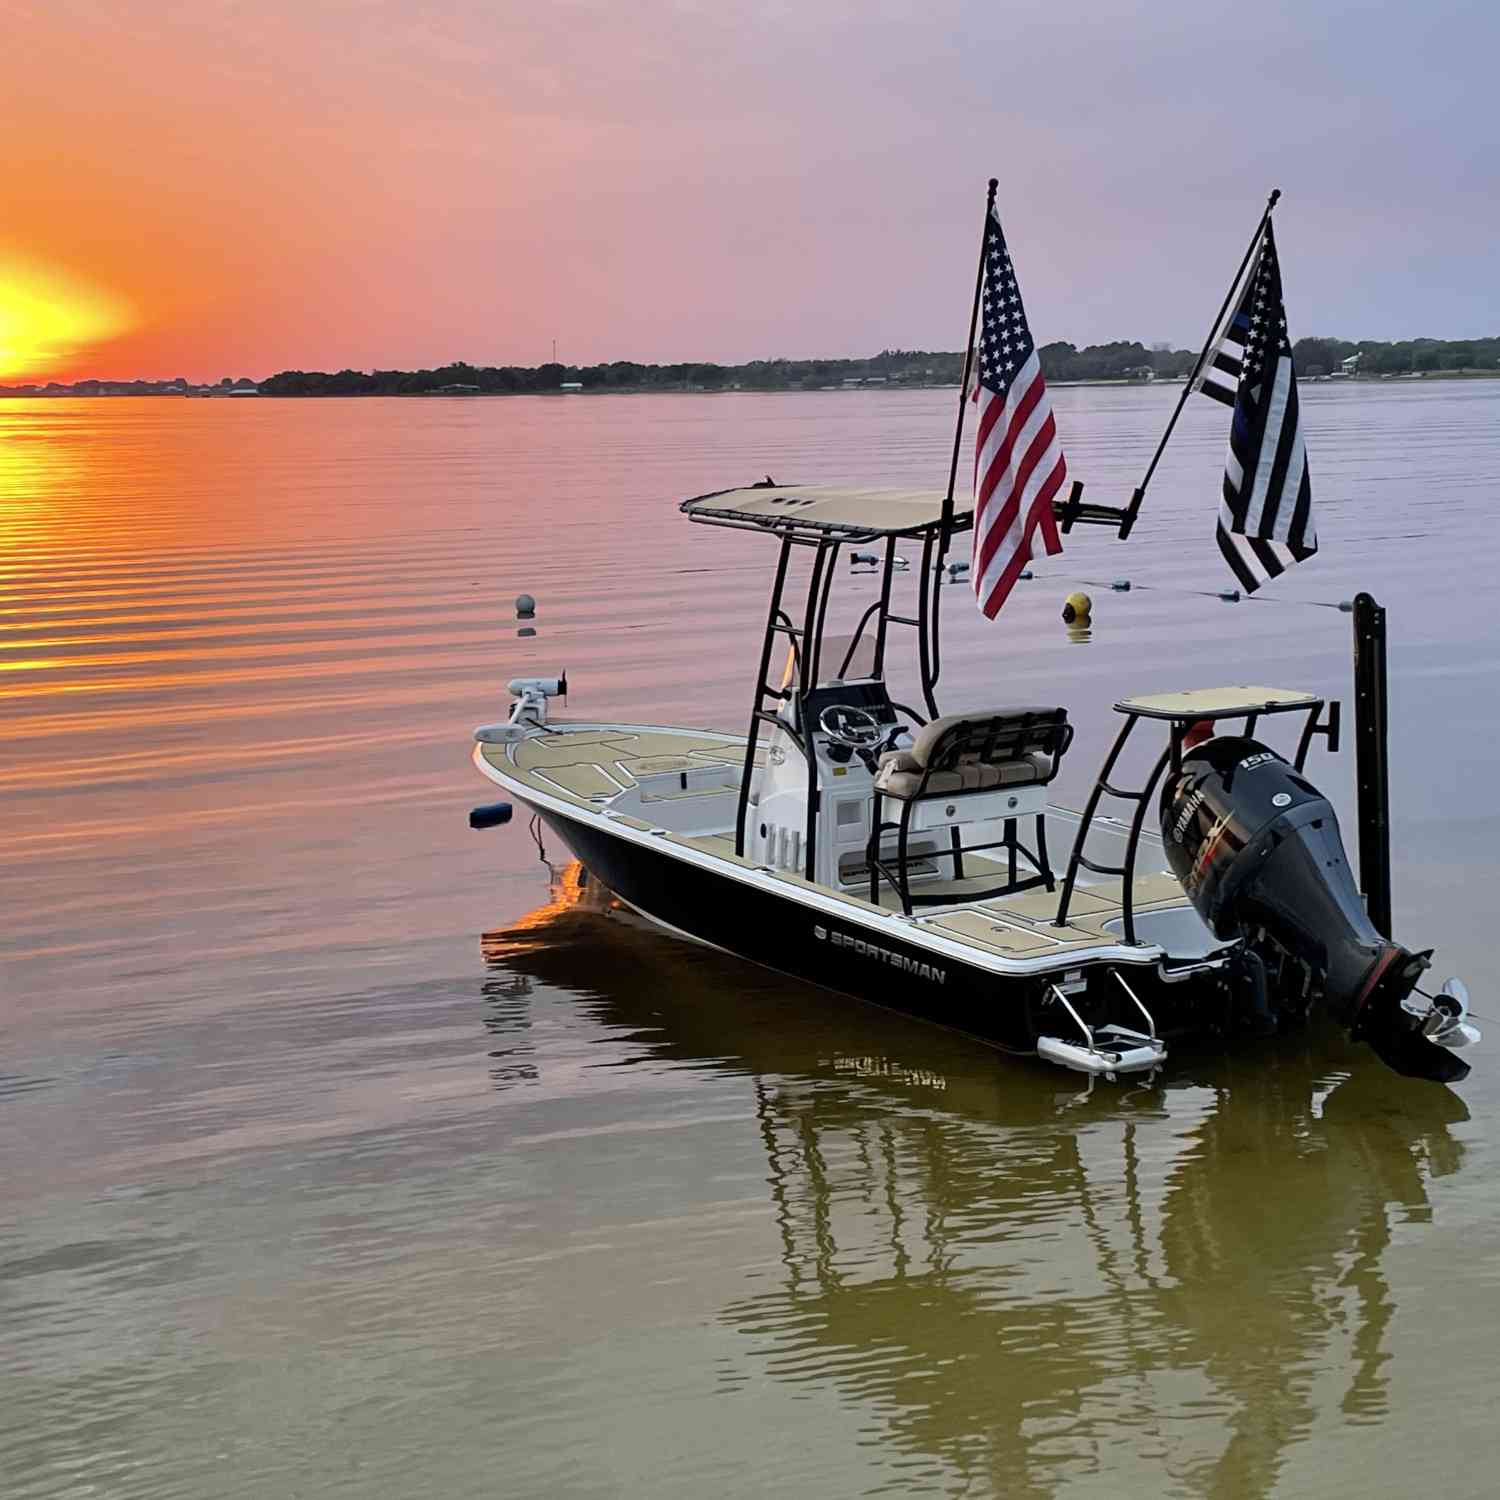 Not sure which is more beautiful, the boat or the sunset.